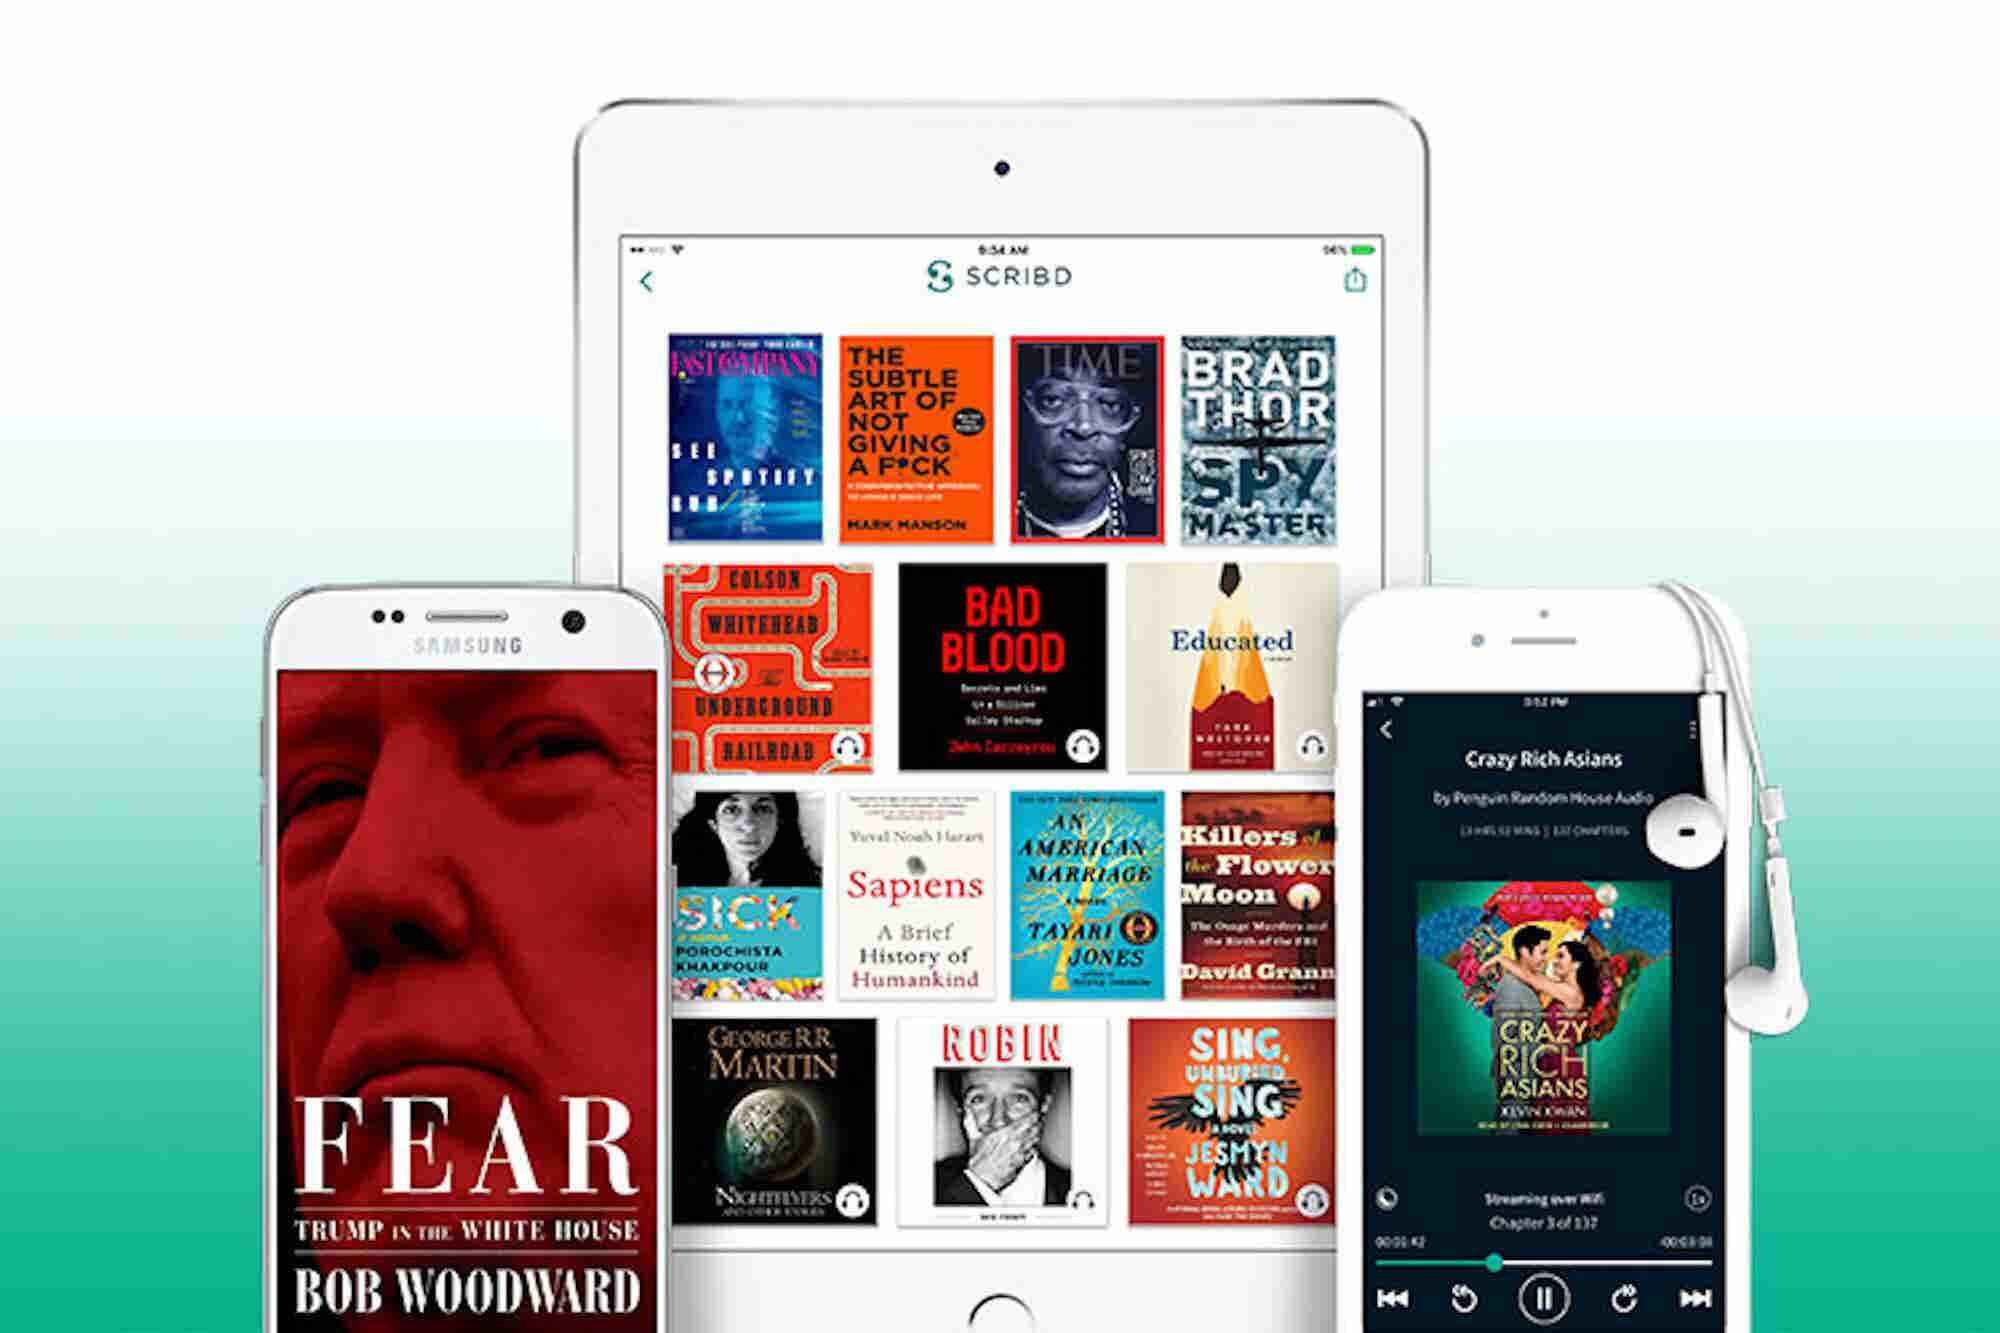 Access More Than a Million eBooks, Magazines, and News Outlets Anywhere With Scribd